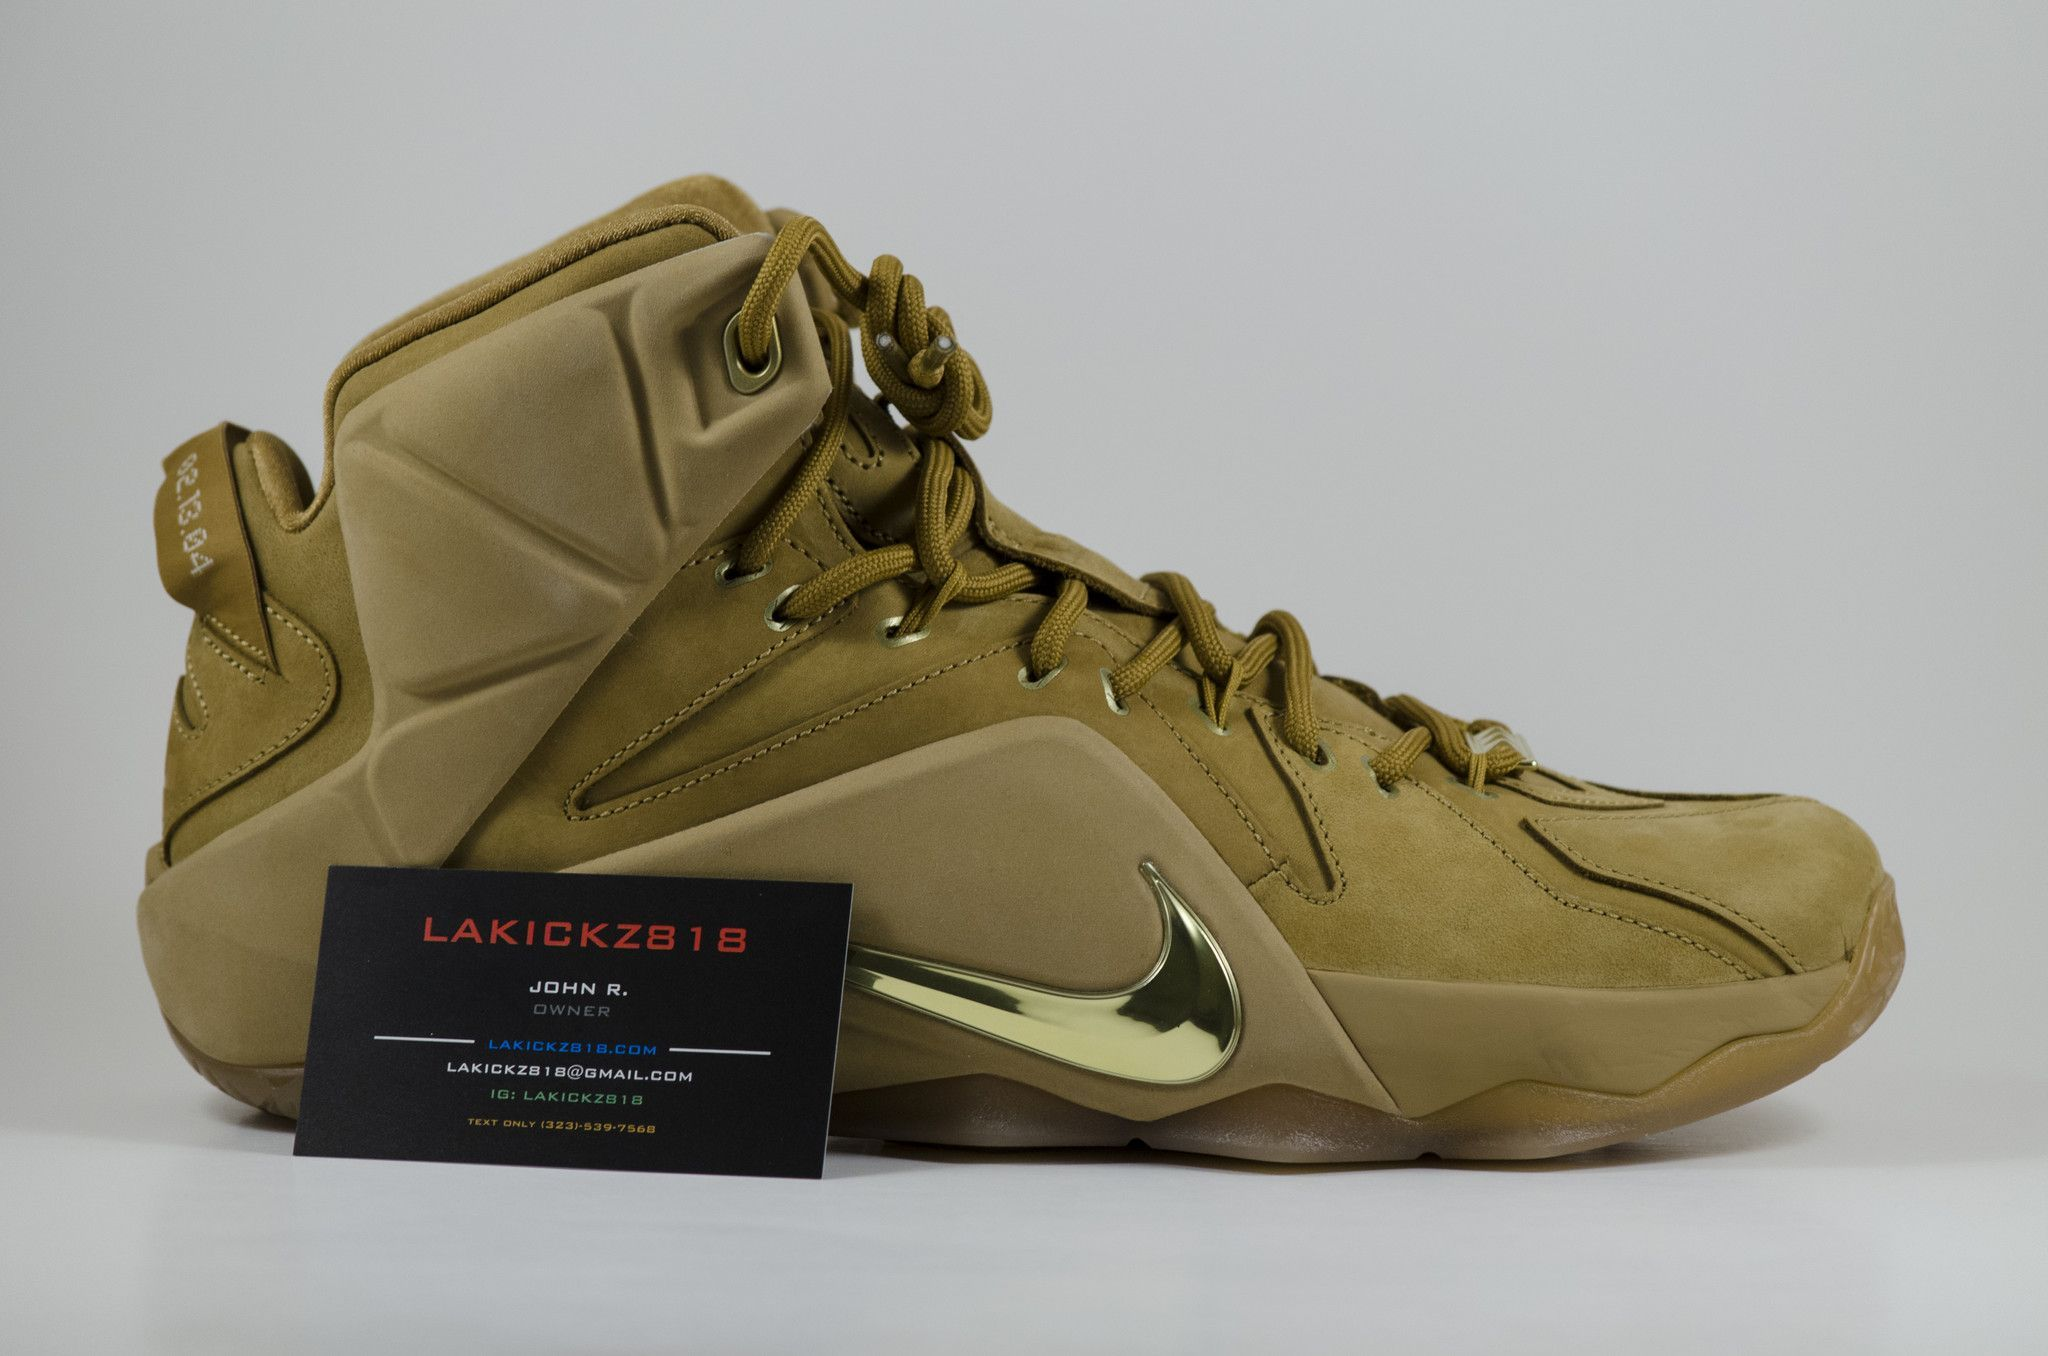 e4485f0991d20 LEBRON XII EXT QS WHEAT Color  Wheat Wheat-Metallic Gold Style Code  744287- 700 Condition  Deadstock Brand New